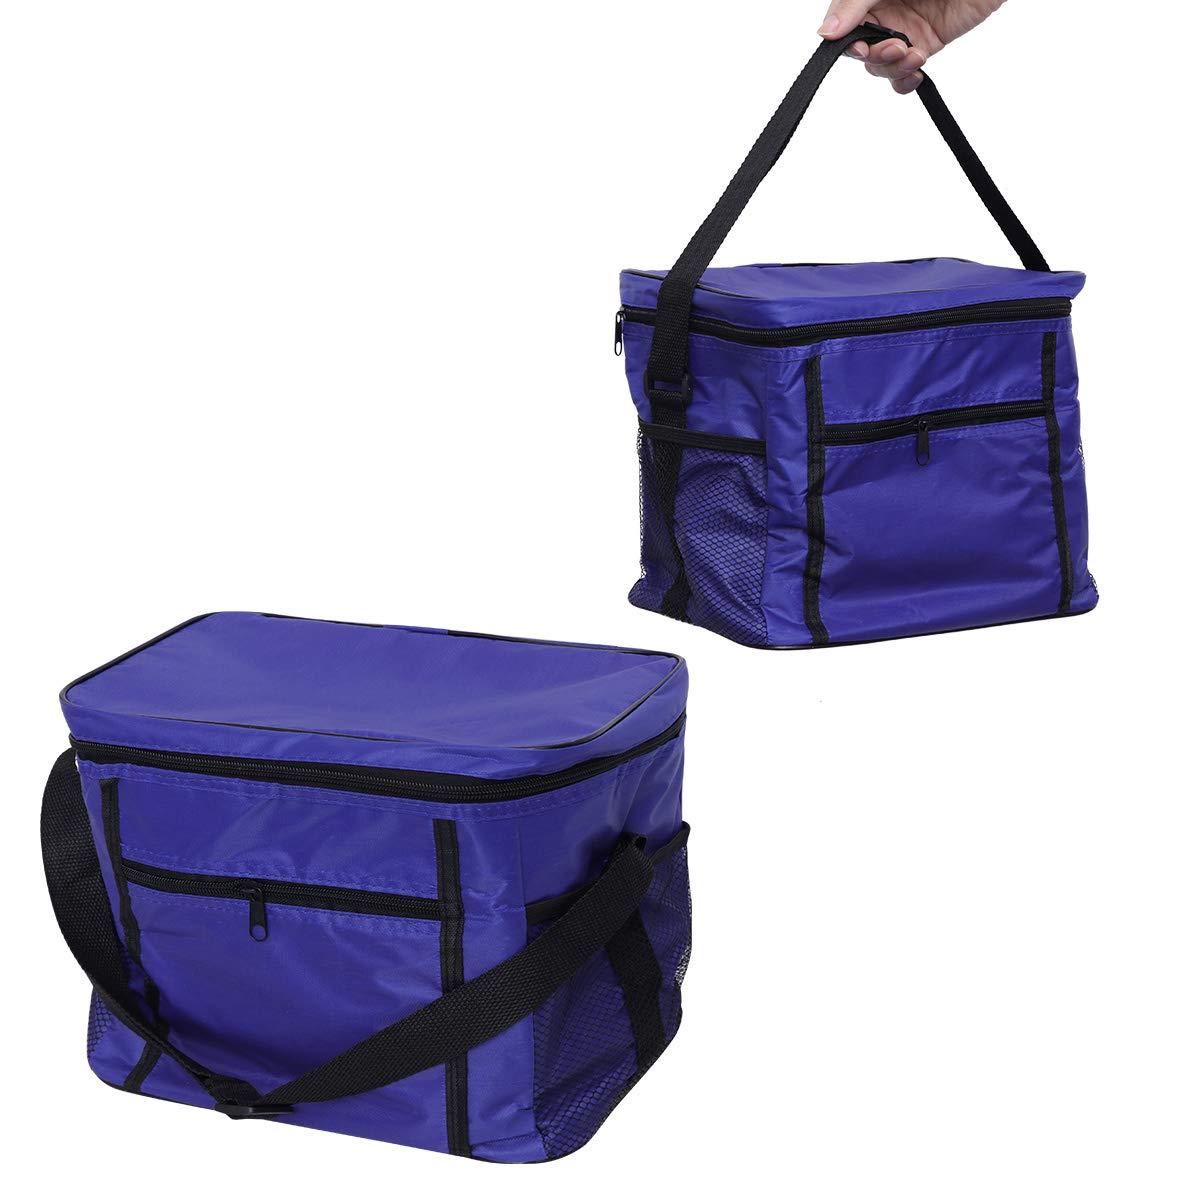 LIOOBO Foldable Travel Oxford Cloth Ice Pack Insulated Cooler Bag